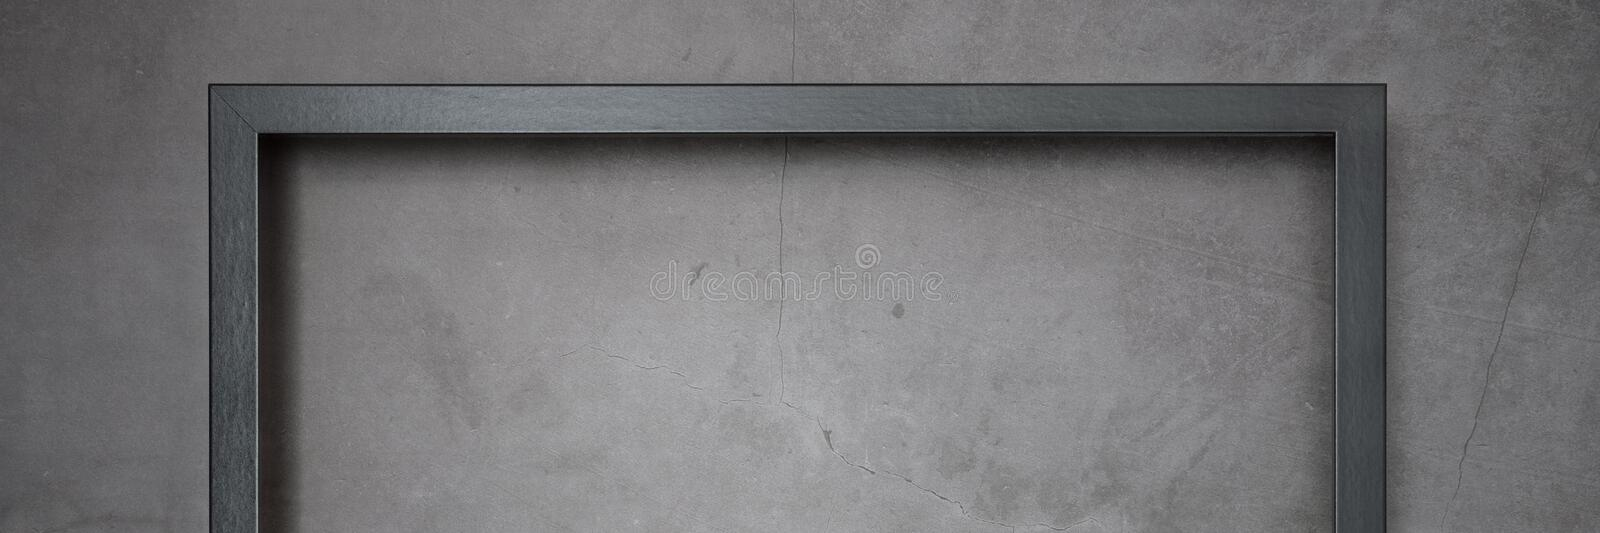 Dark frame for painting on a gray cement textured background. royalty free stock photos